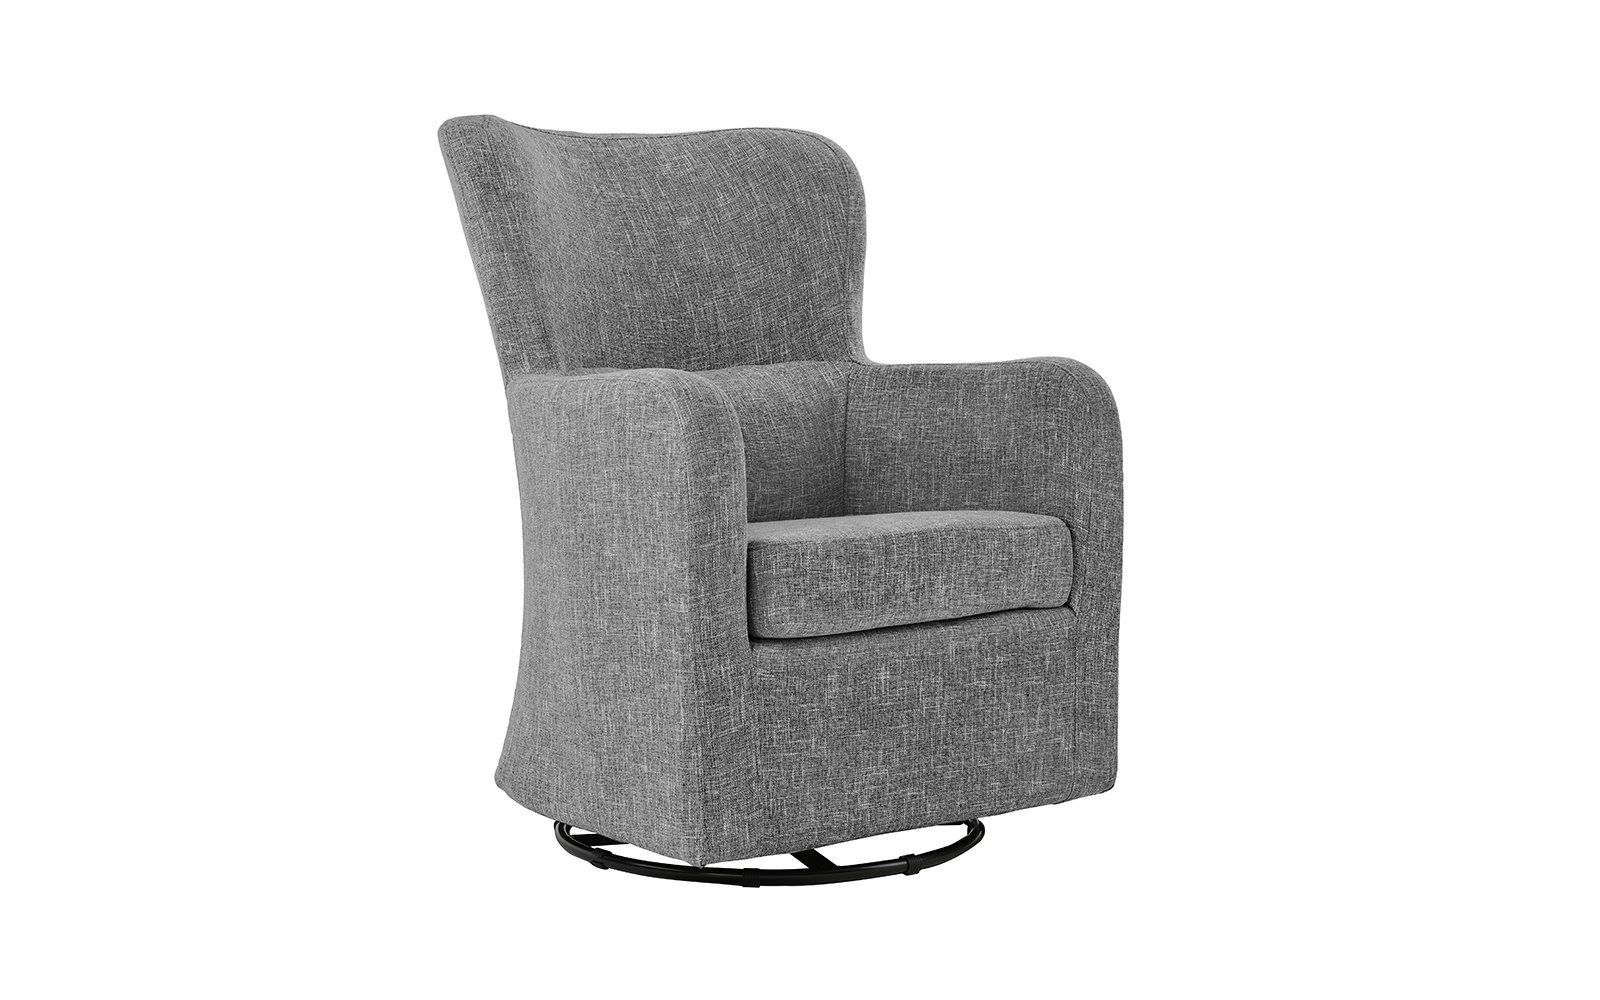 Modern Swivel Armchair Rotating Accent Chair For Living Room Light Grey Have A Look At The Photo By Seeing The Swivel Armchair Accent Chairs Modern Swivel #swivel #arm #chairs #living #room